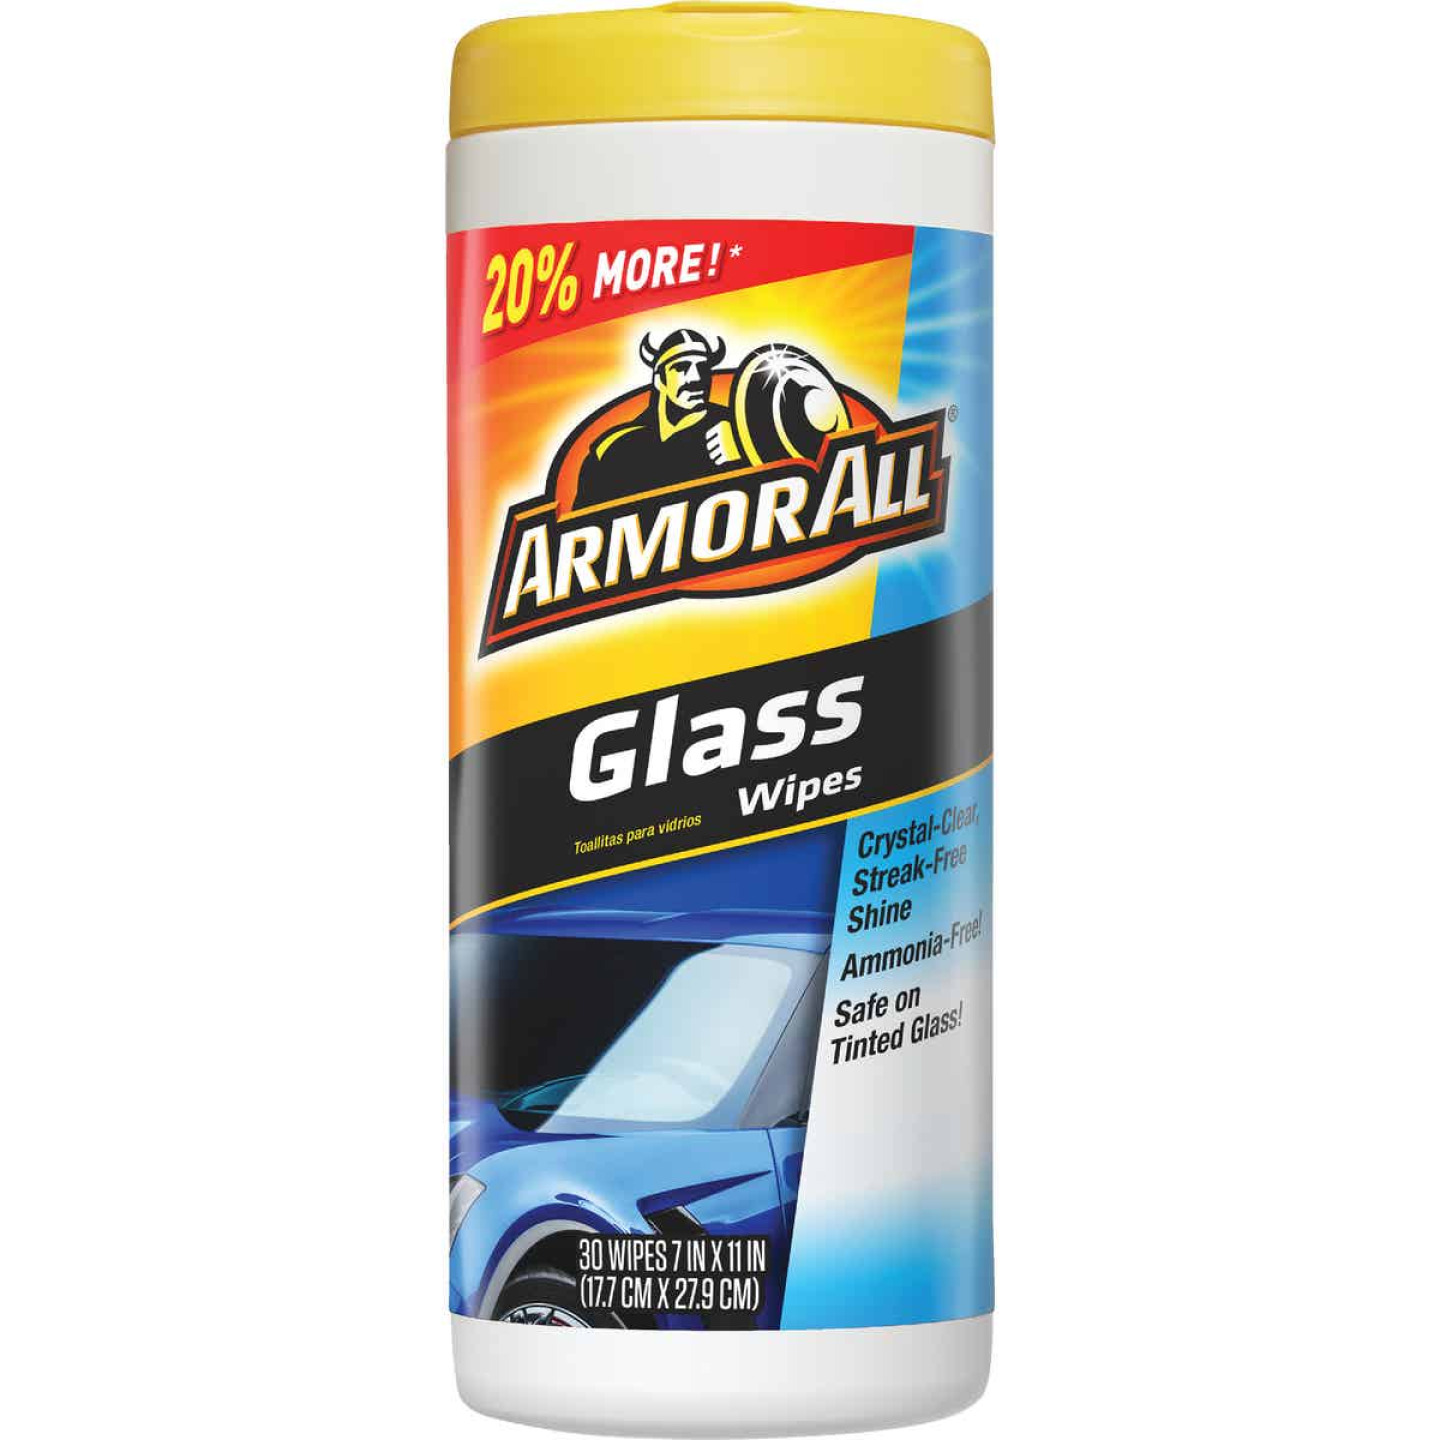 Armor All Glass Wipes (30-Count) Image 1